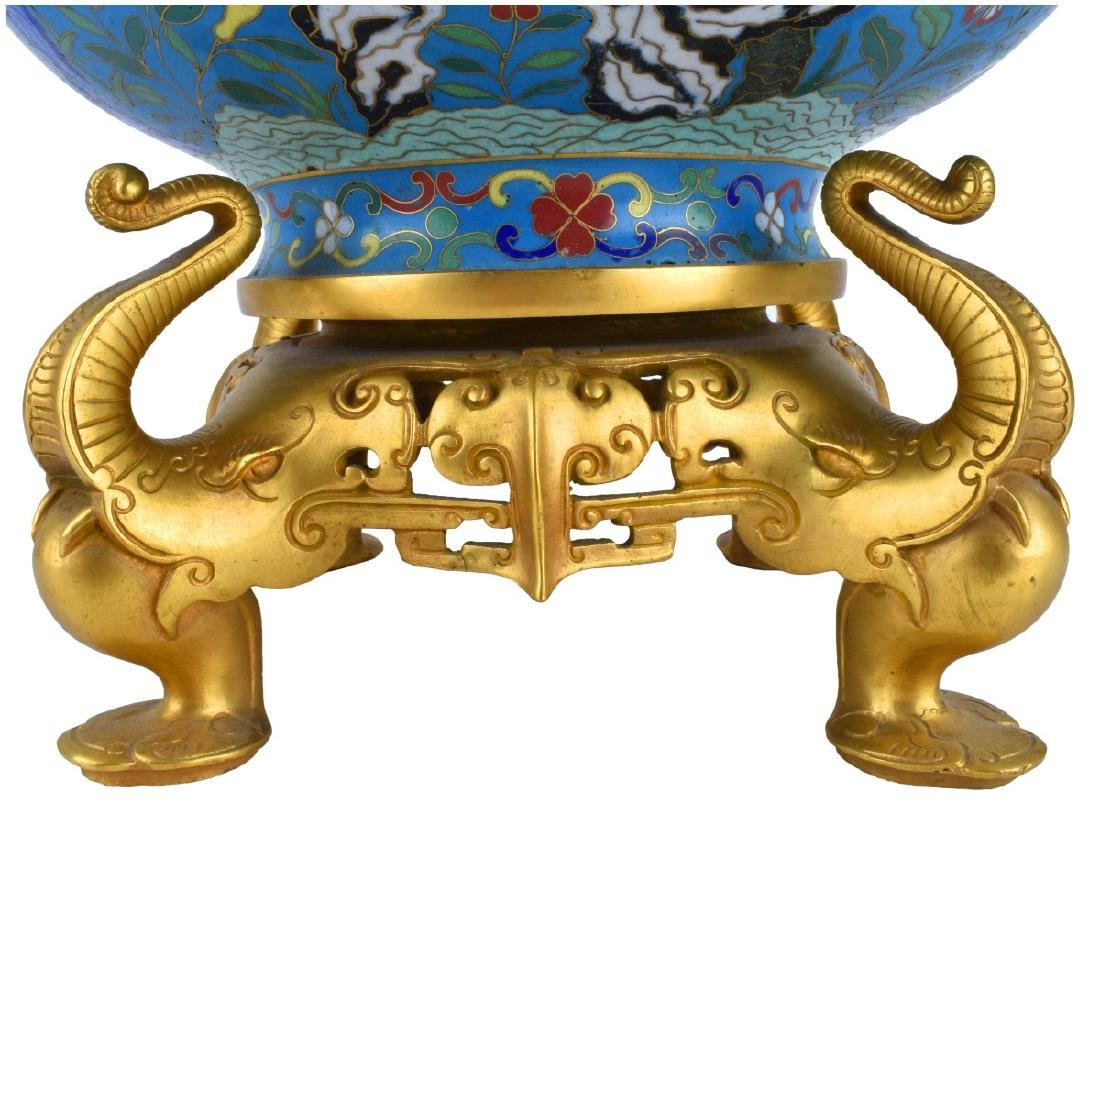 Chinese Cloisonne Bowl With Gilt Brass Mounts - 2